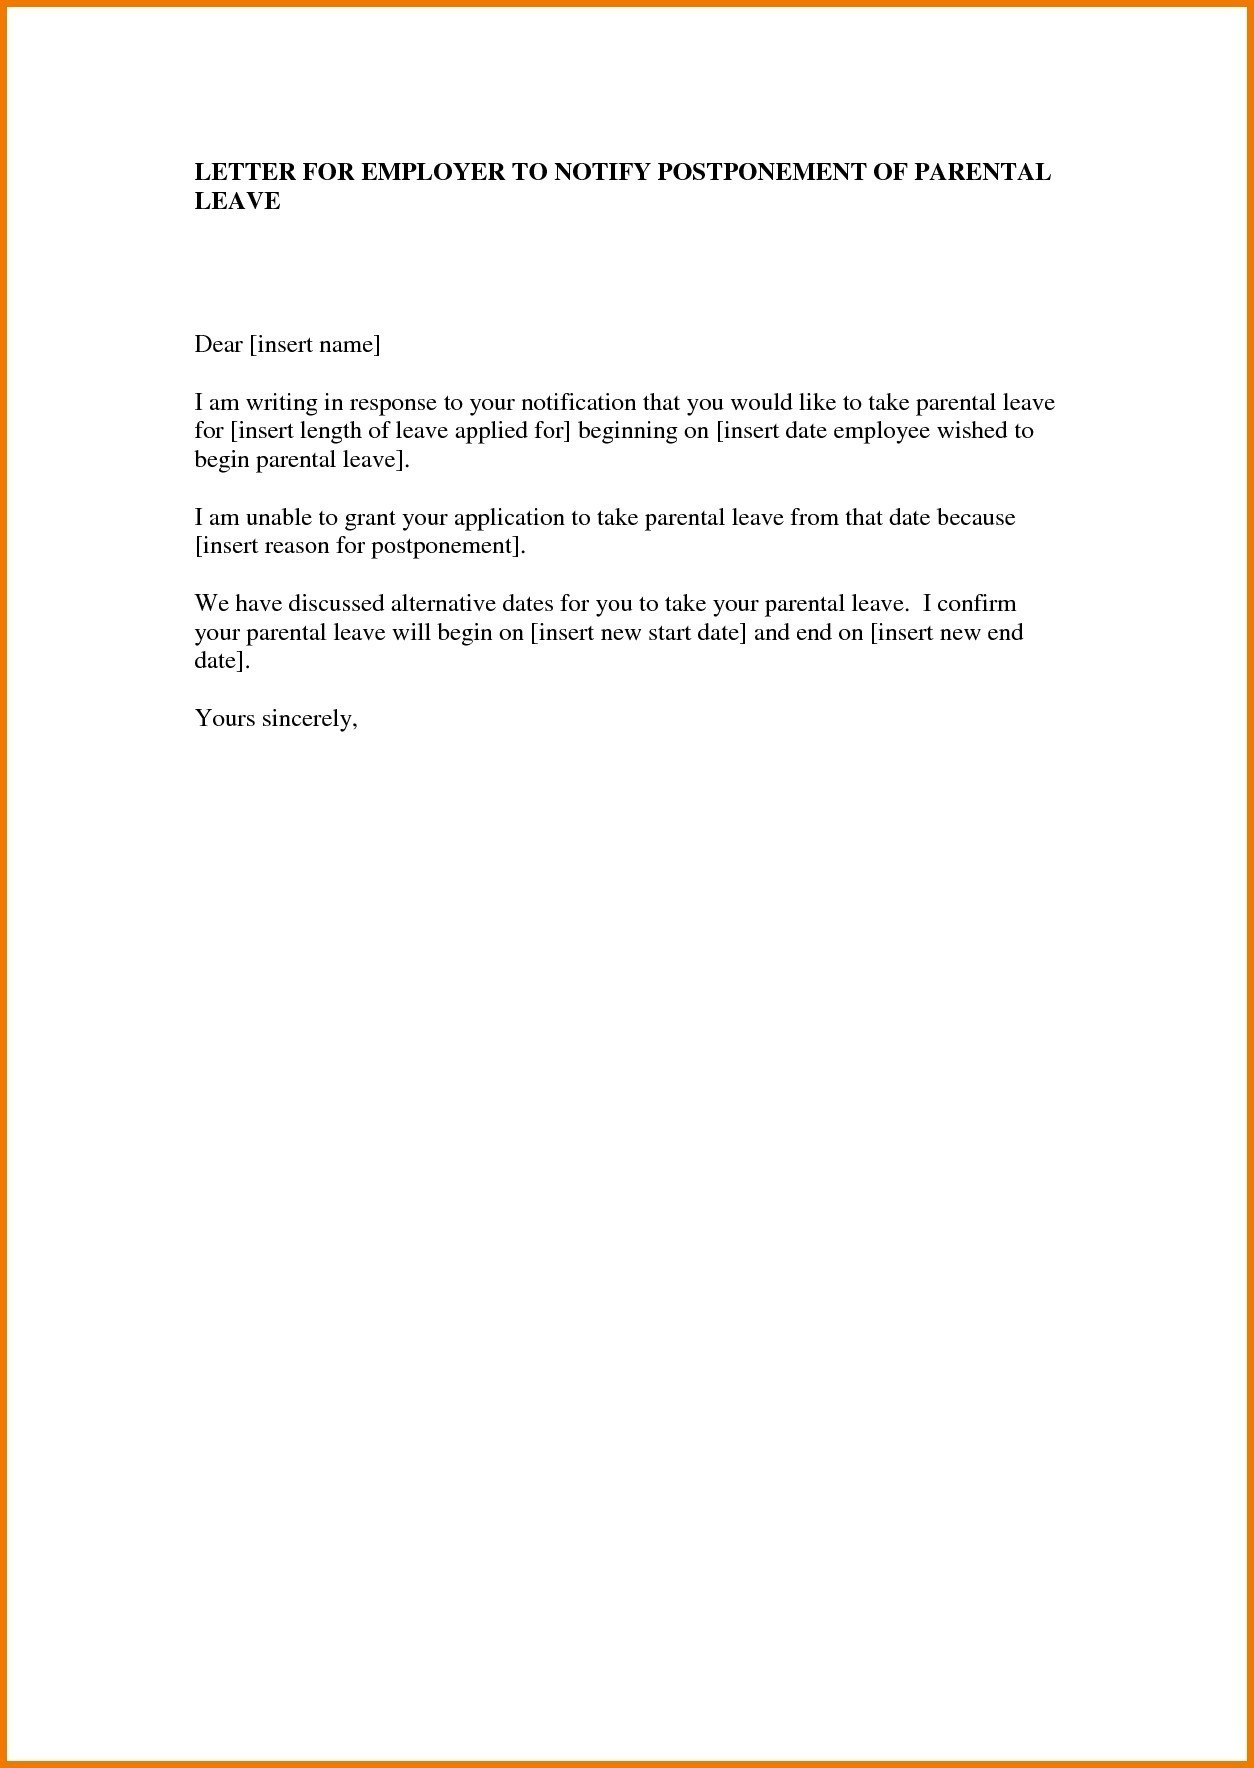 Pregnancy Confirmation Letter Template - Paternity Leave Letter Template Uk Best 20 New Letter Template